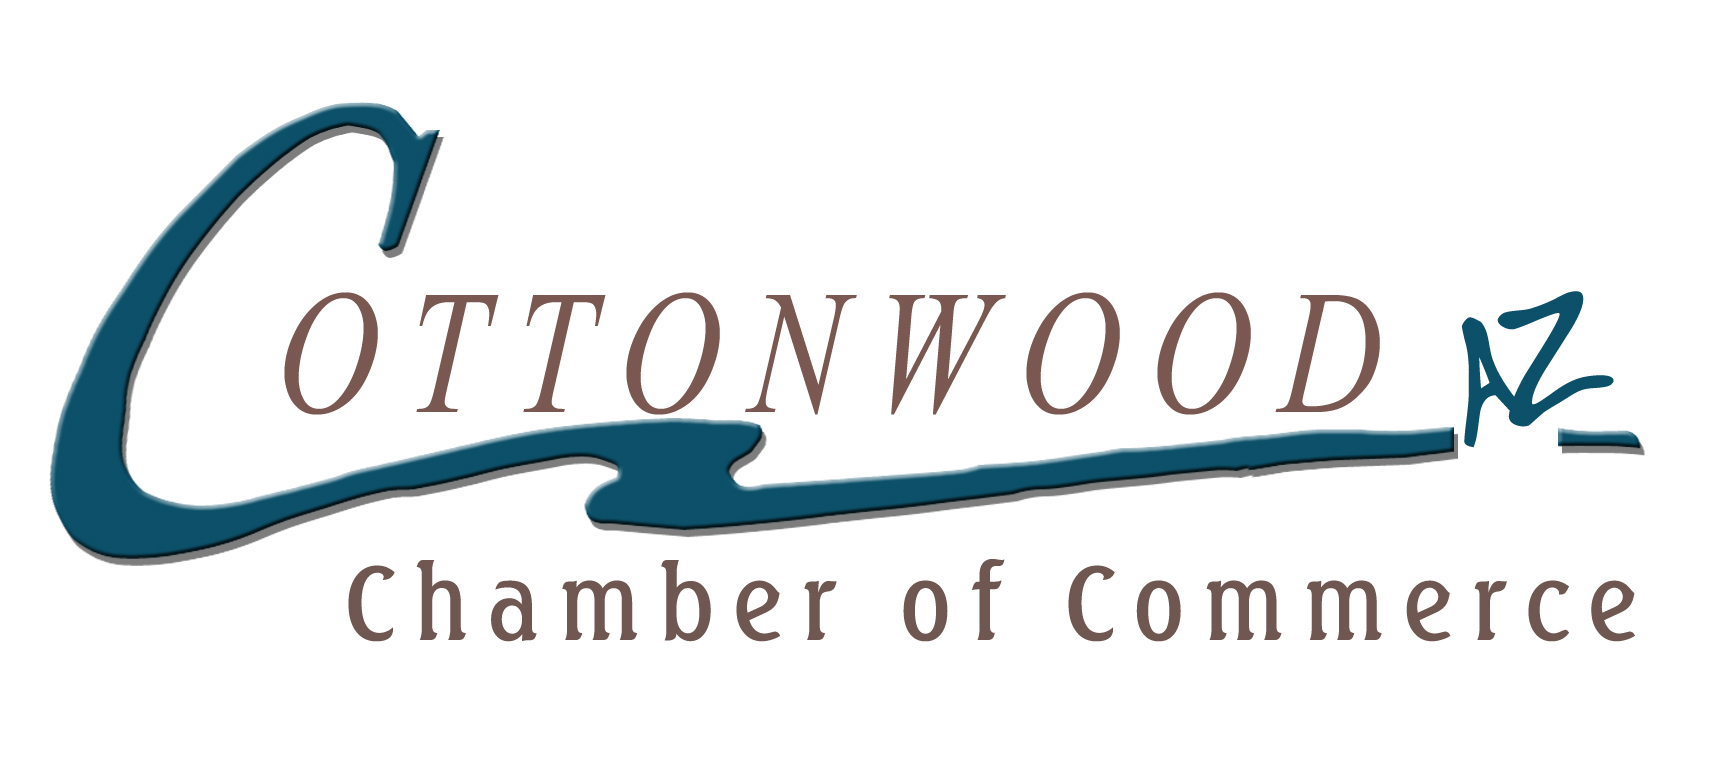 Cottonwood Chamber of Commerce Logo